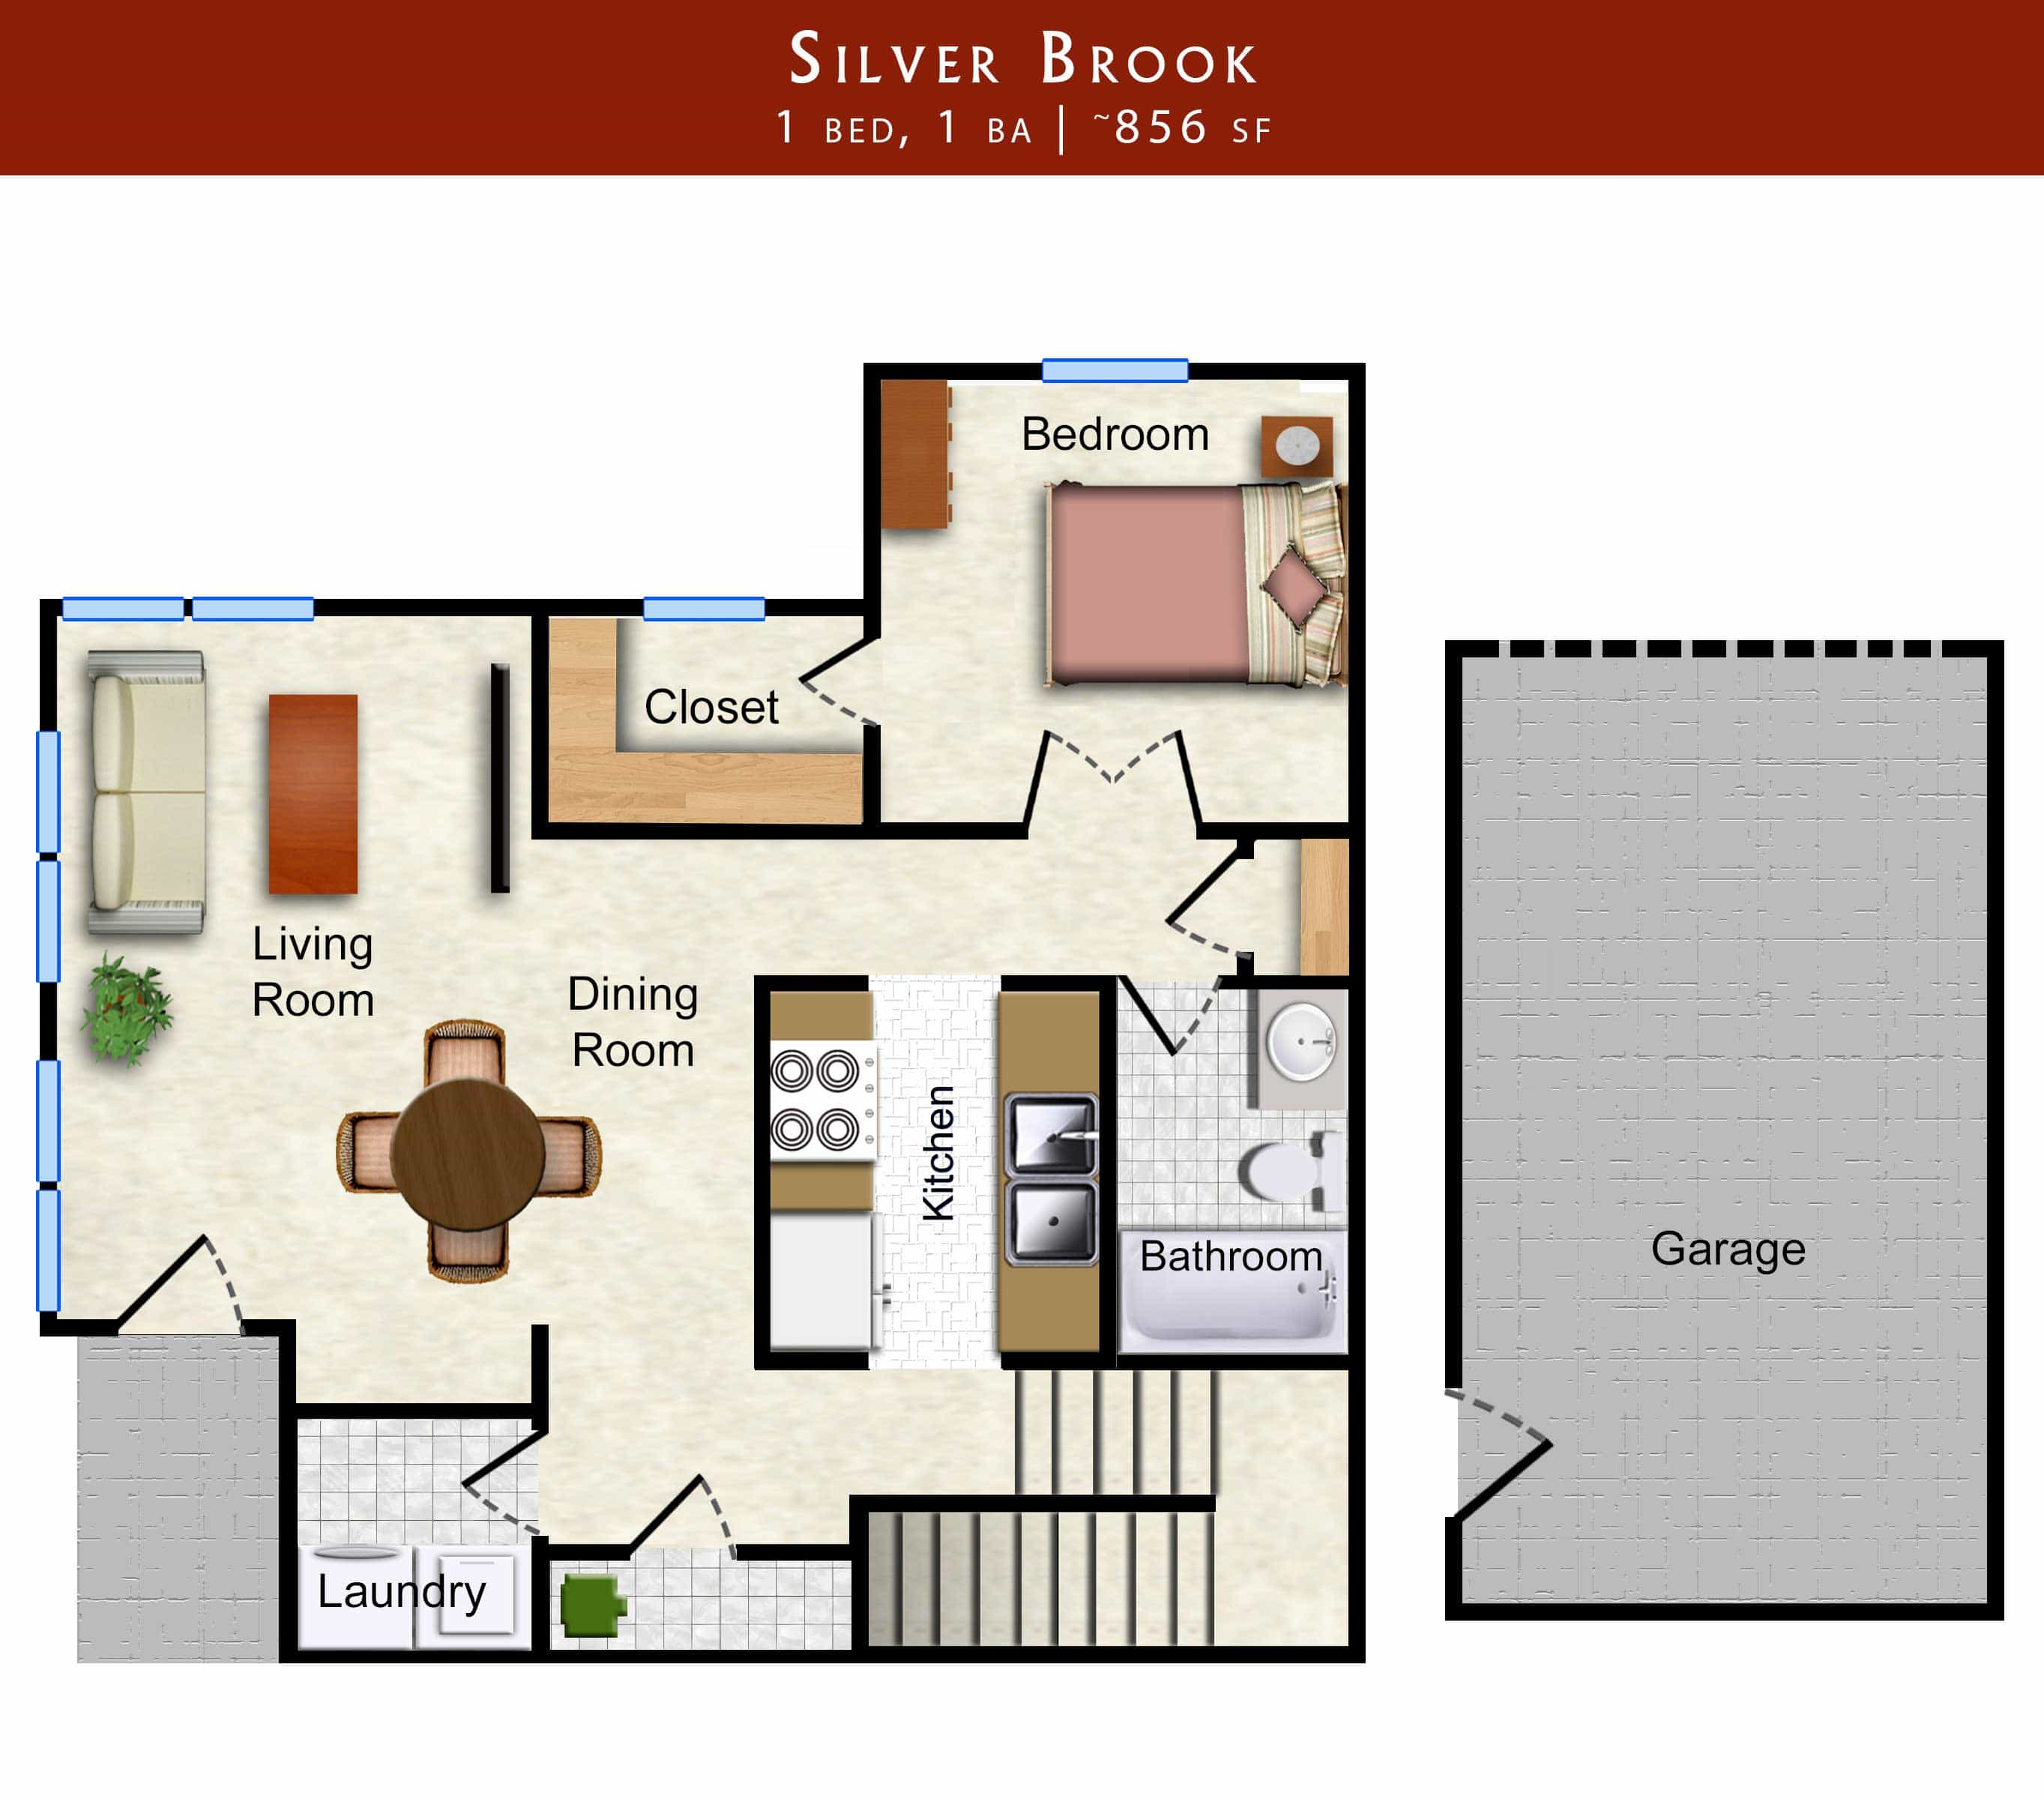 Silver Brook: 1 bed, 1 bath 856 sq. ft. with garage floor plan of apartment in Lawrence, KS